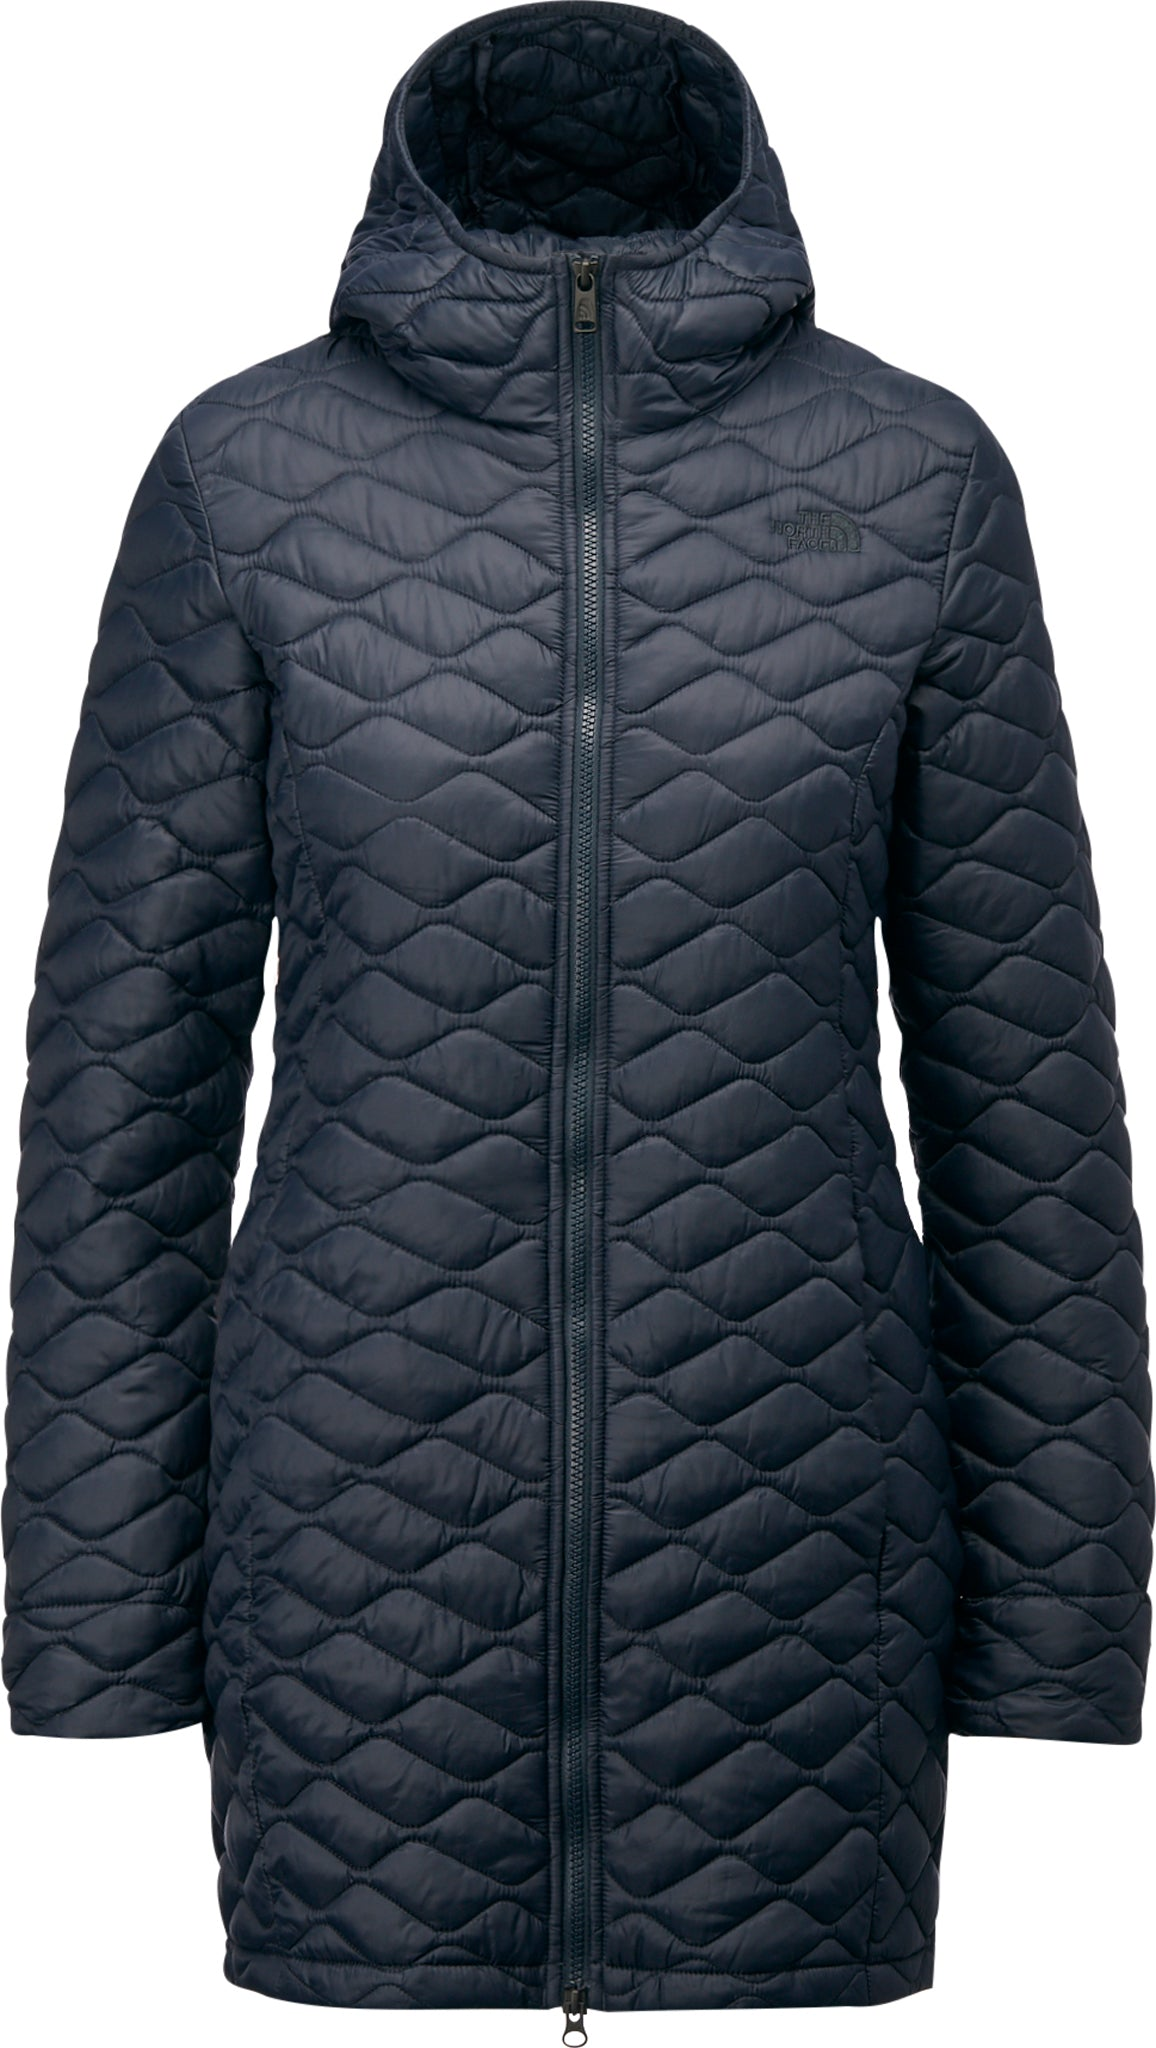 reputable site 432ca 2f5b8 The North Face Women s ThermoBall Parka II